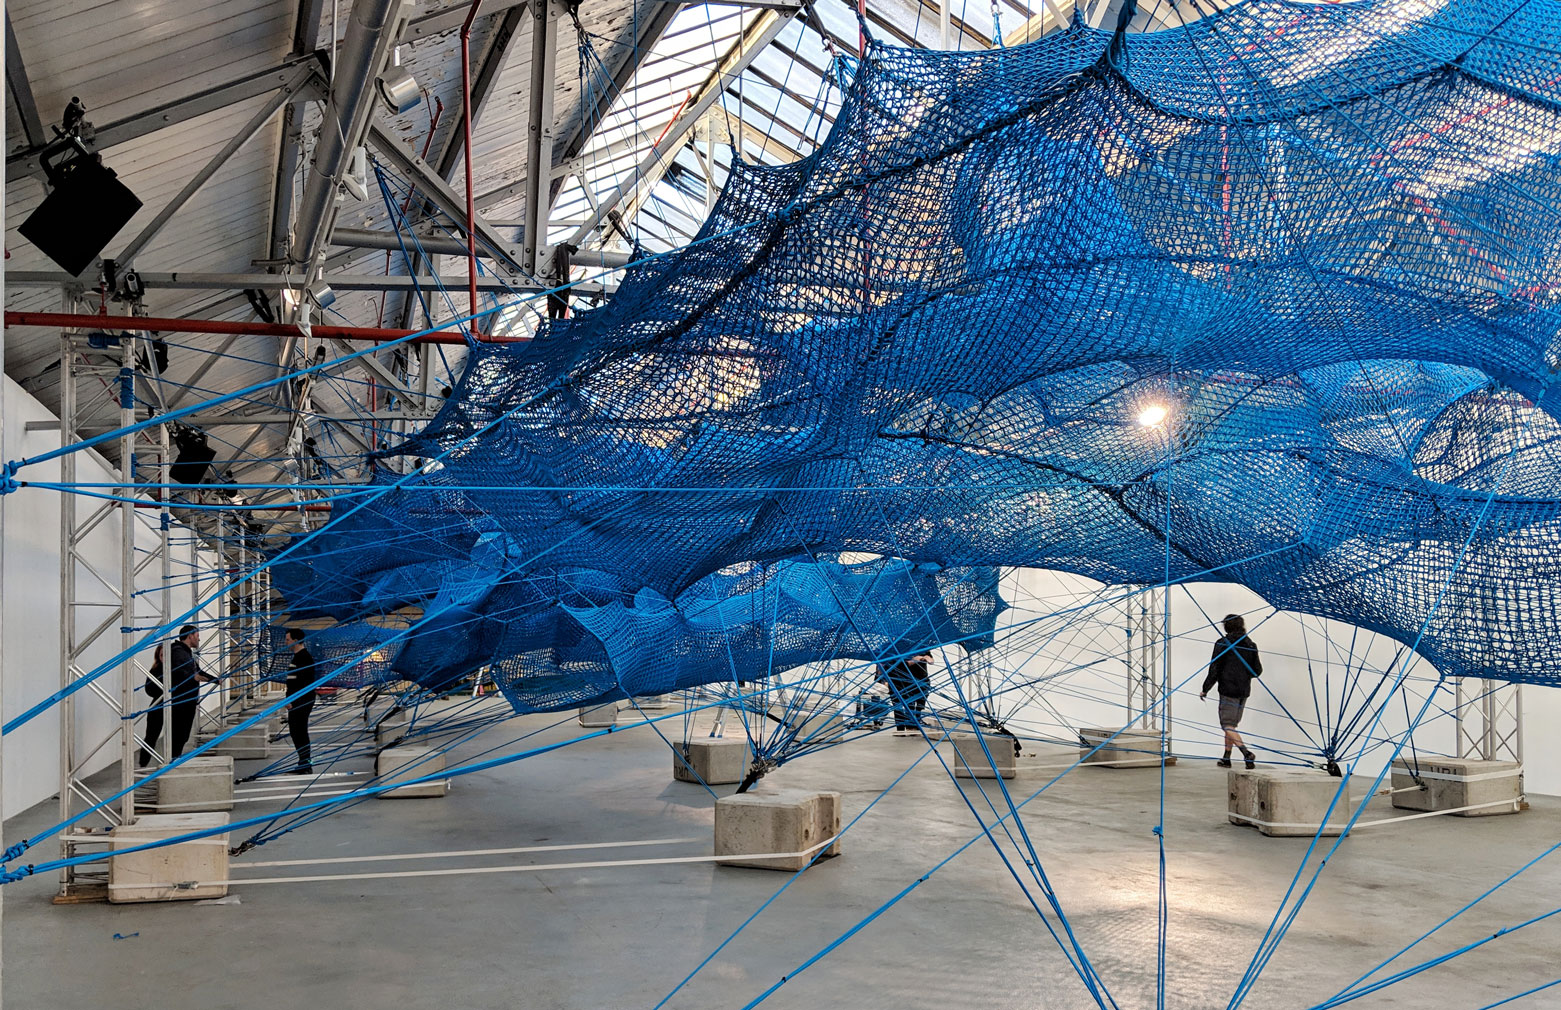 Arts collective Numen/For Use weaves a giant net inside London's Brewer Street Car Park